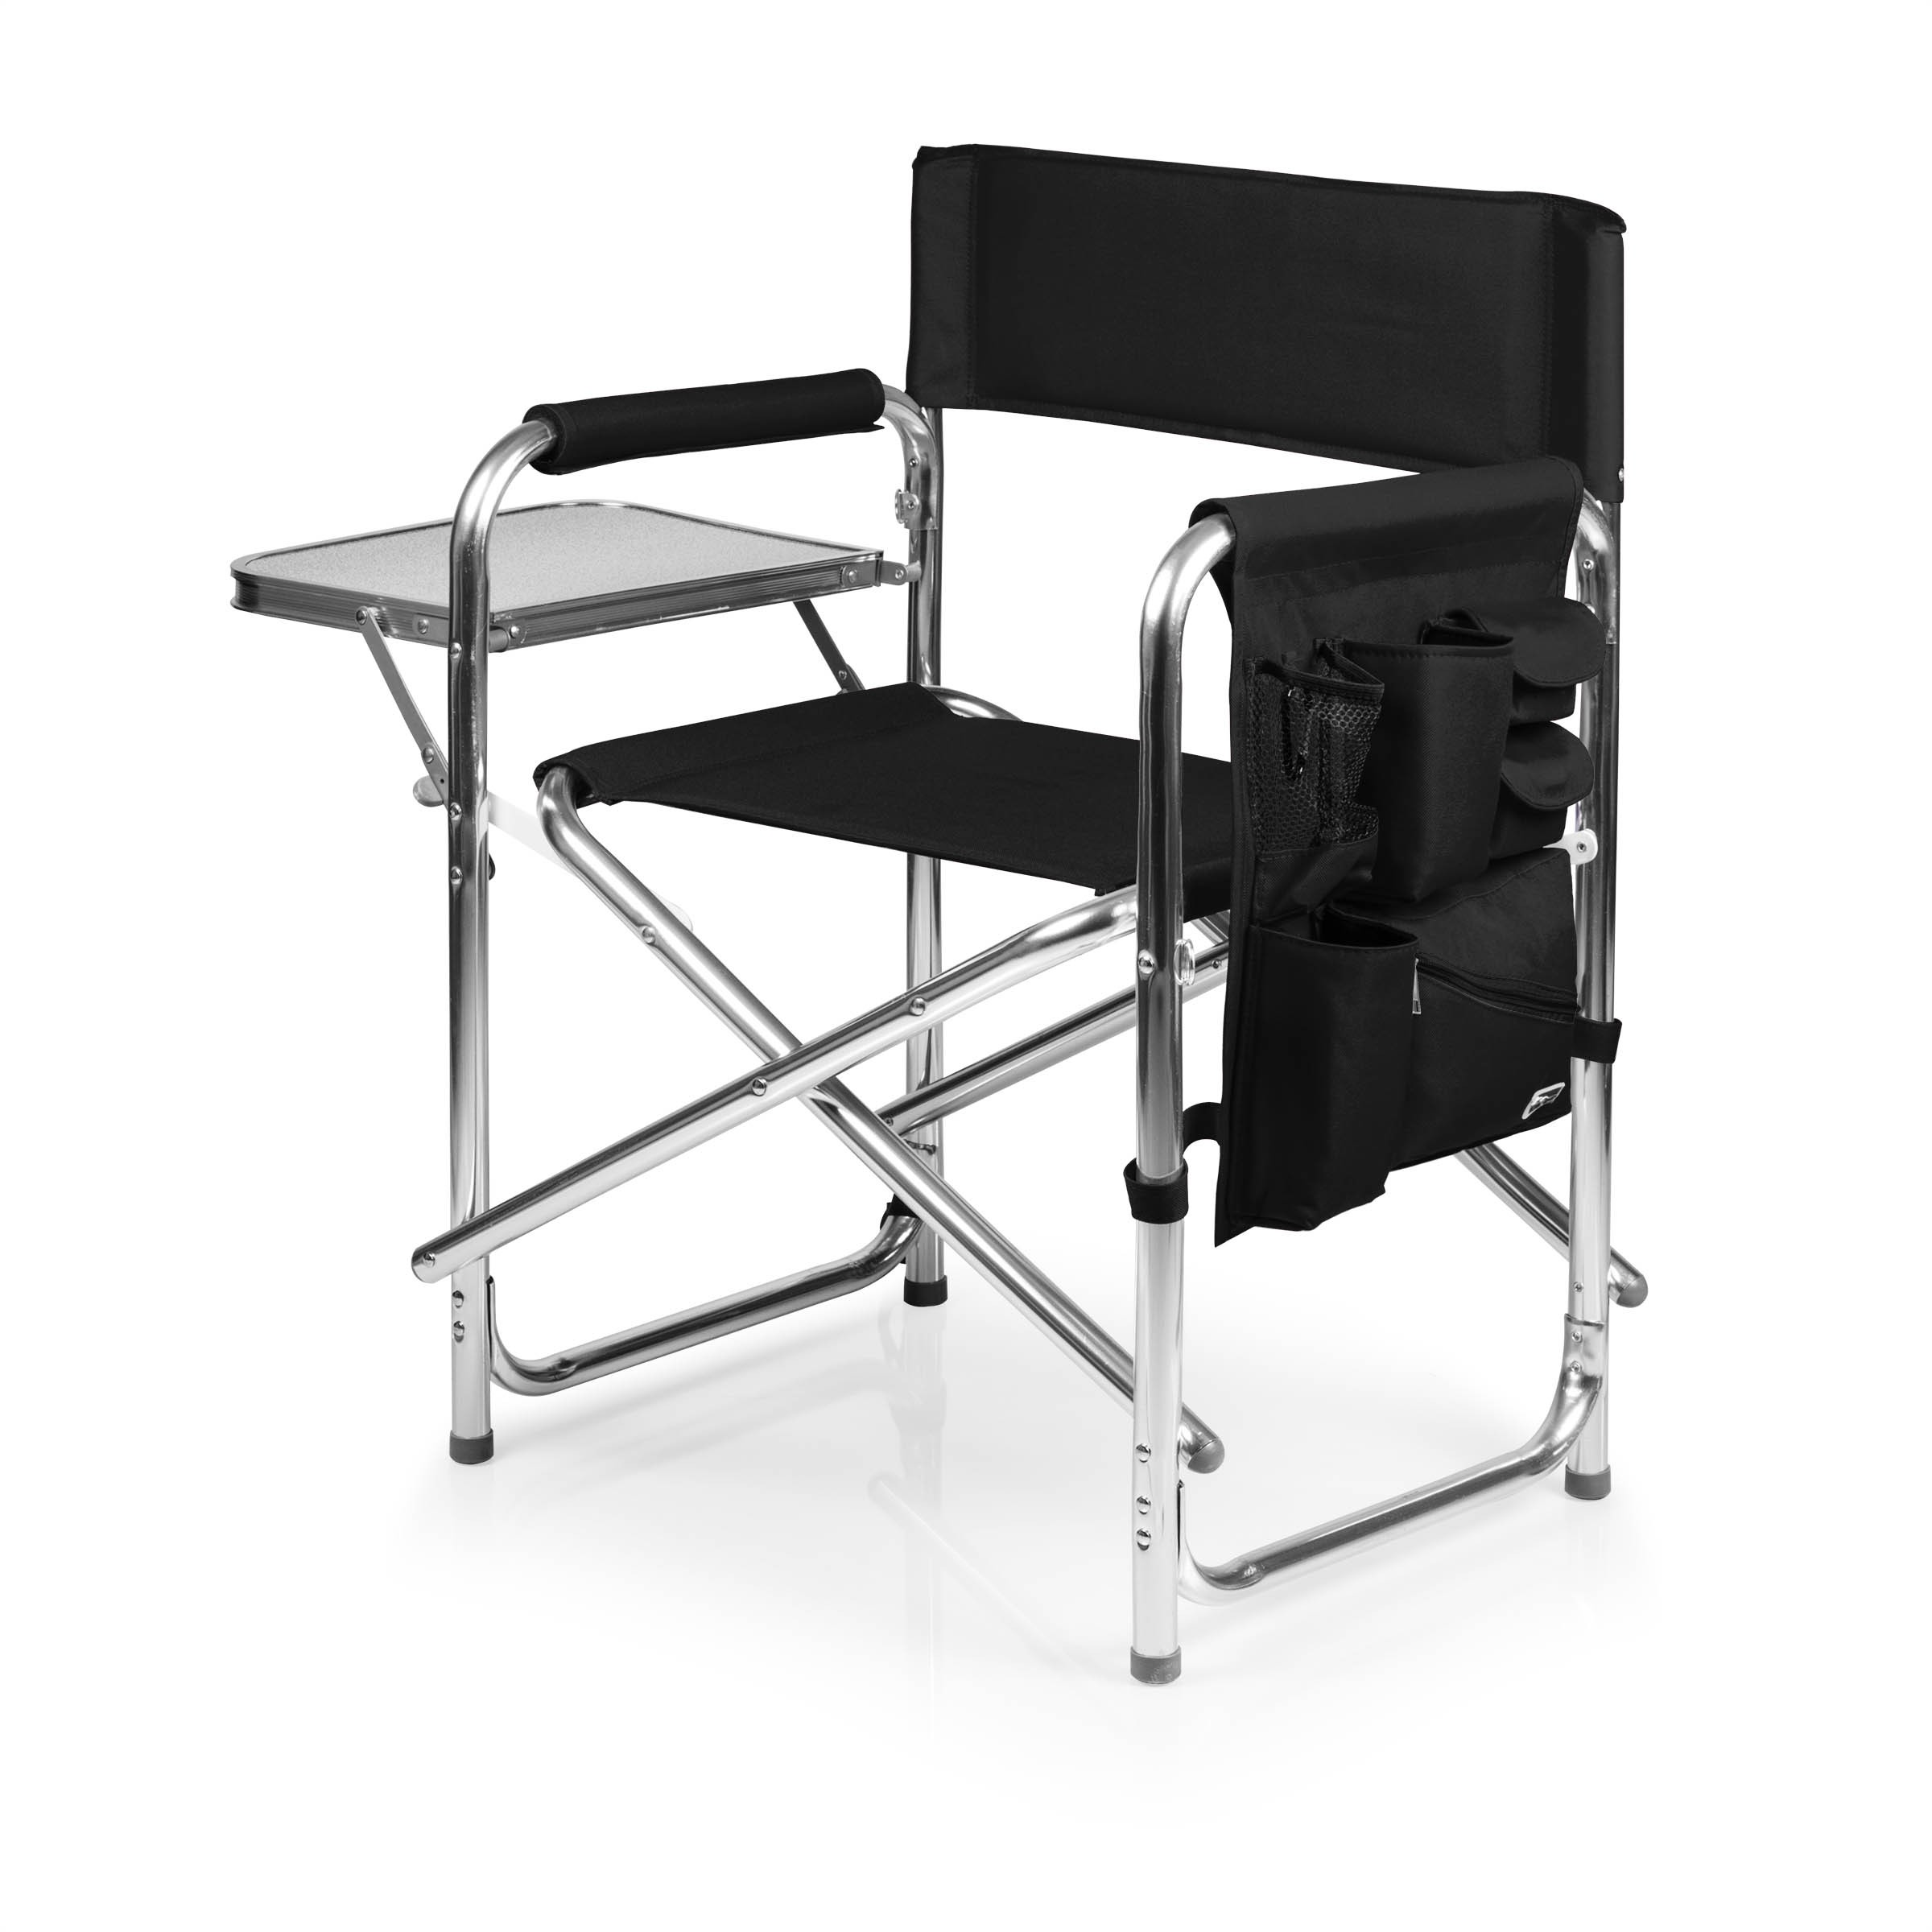 Picnic Time Sports Chair Picnic Time Sports Chair Frends Beauty Supply